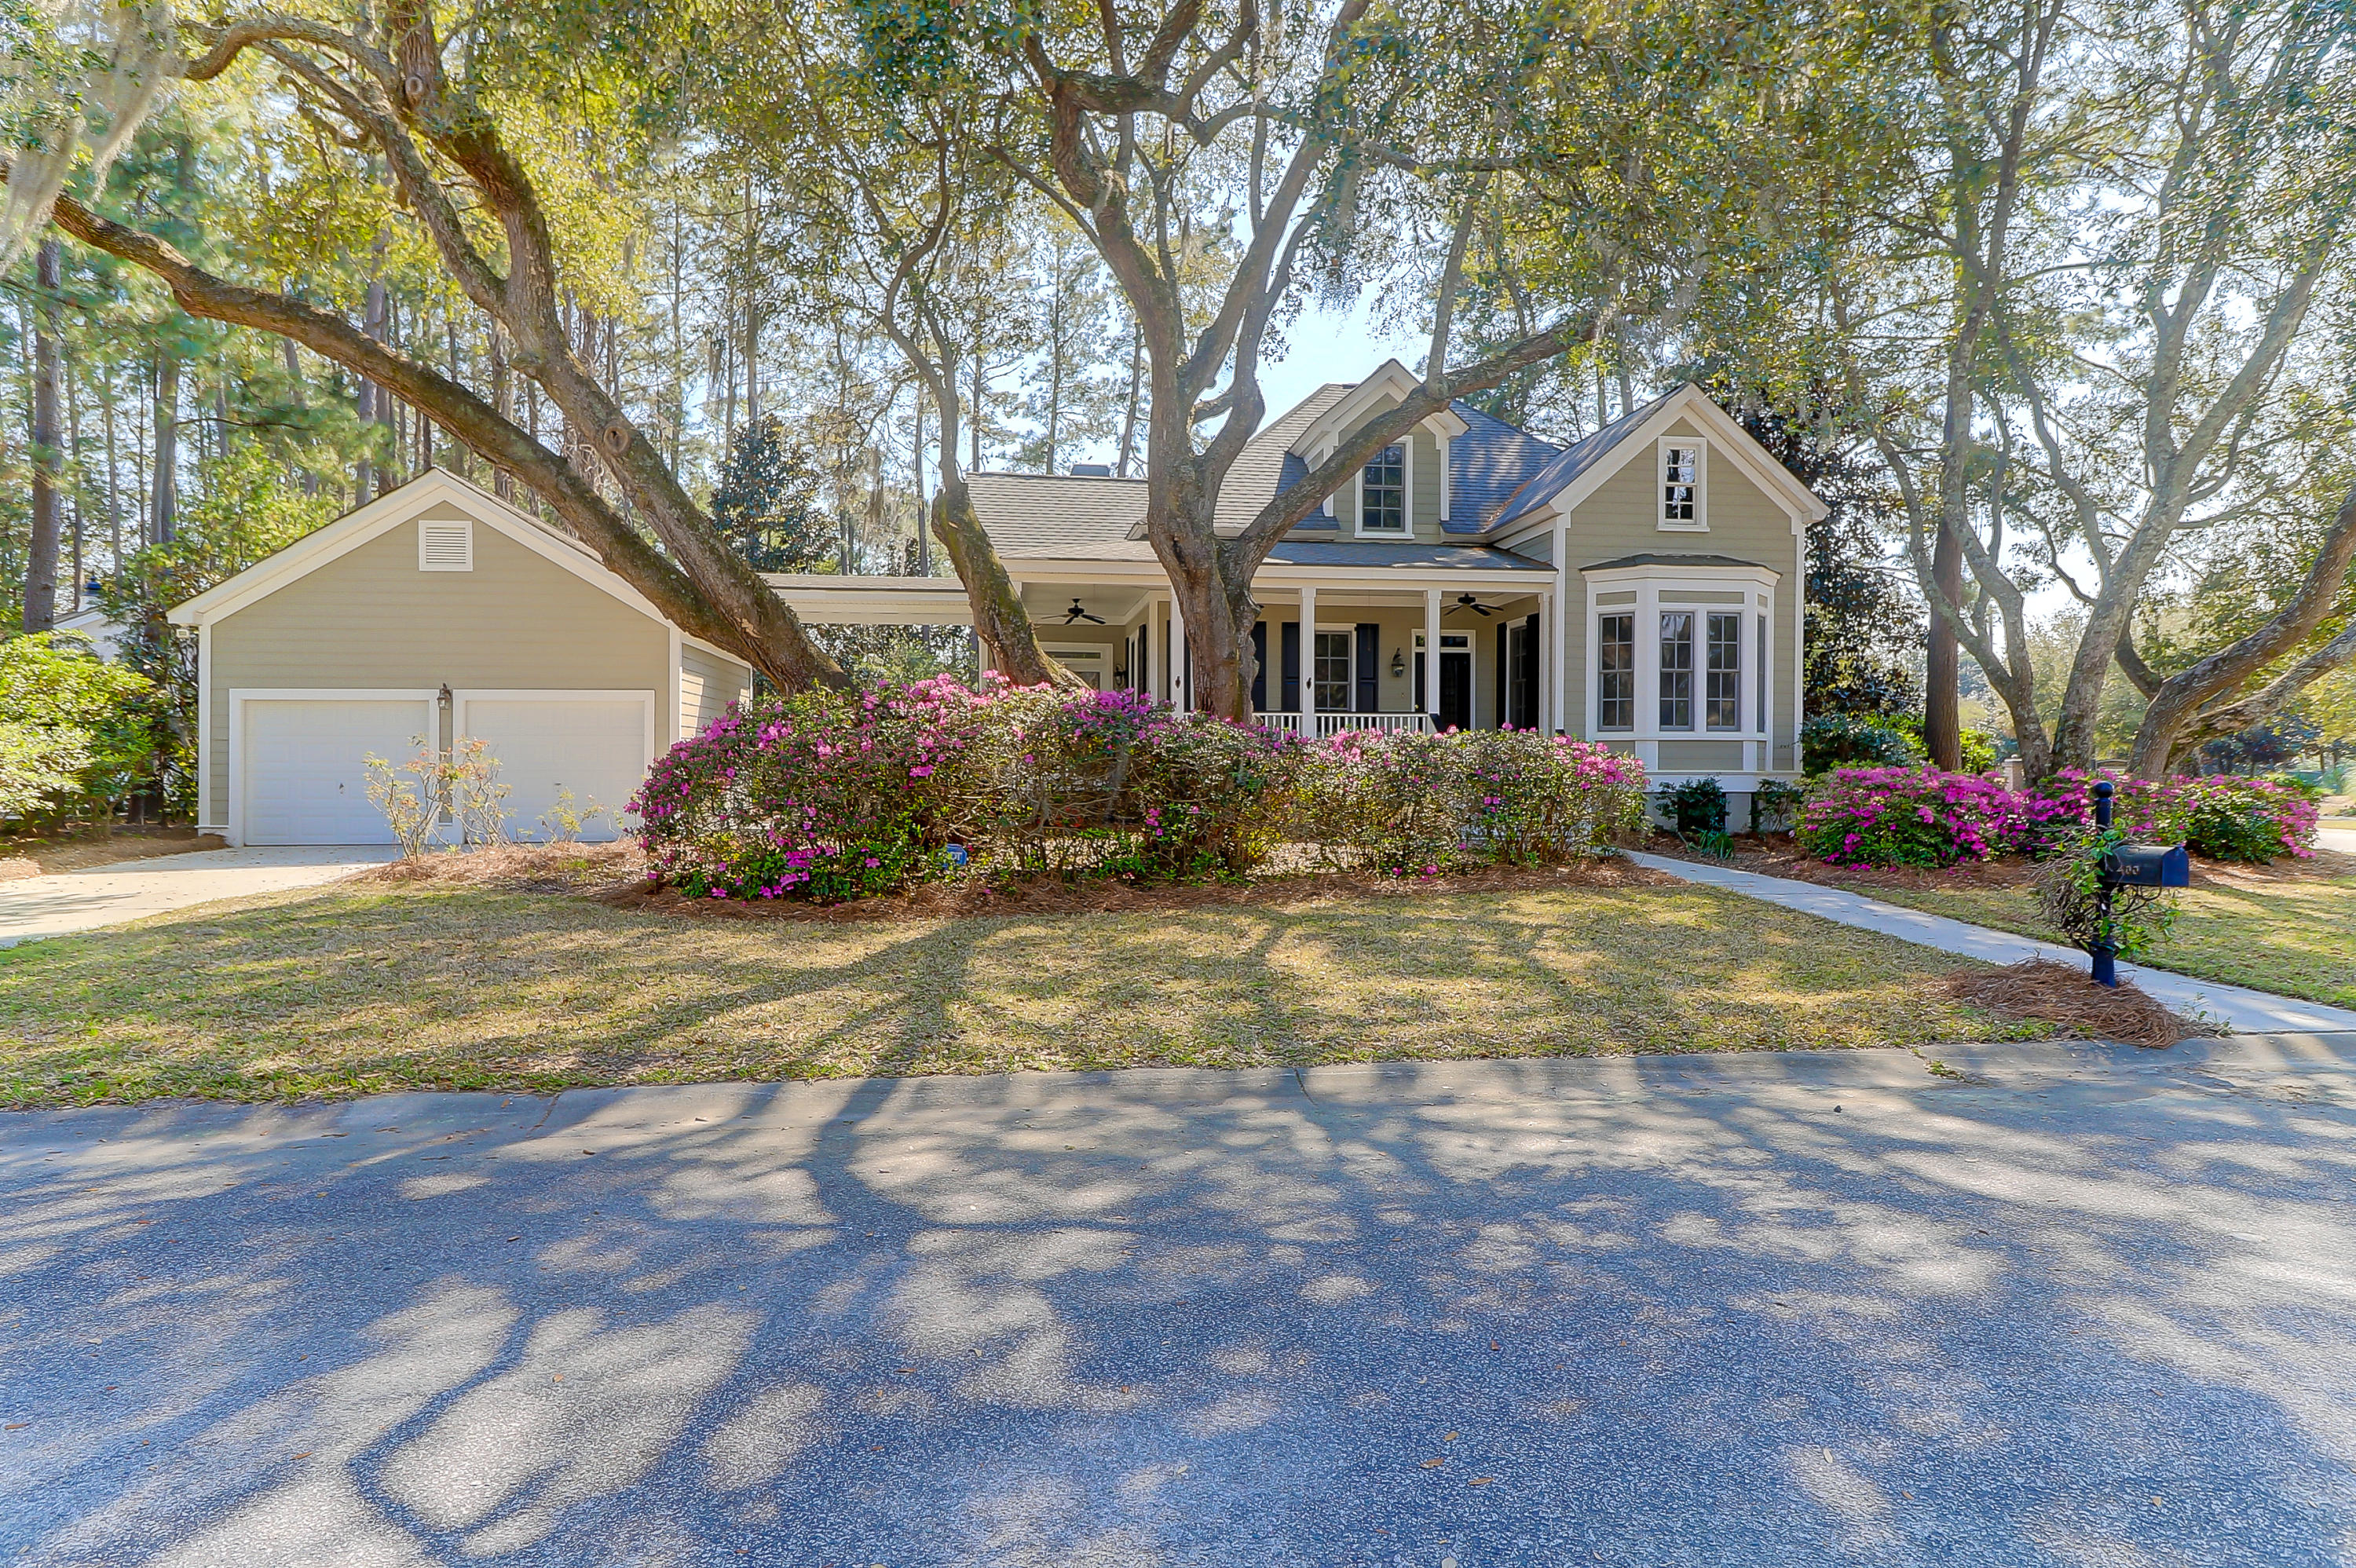 Grassy Creek Homes For Sale - 400 Tidal Reef, Mount Pleasant, SC - 6